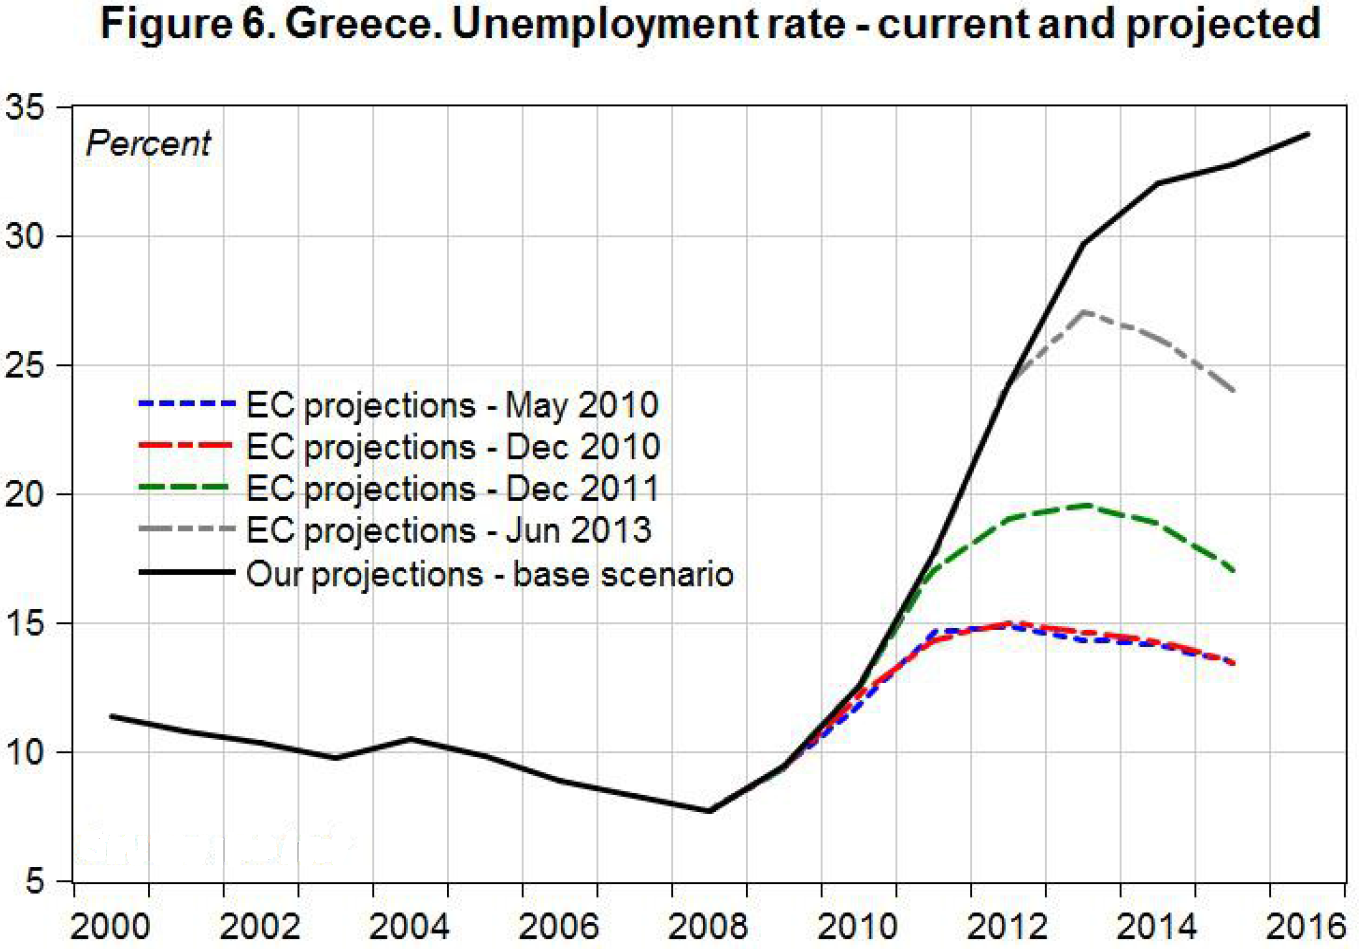 SA_Greece 2013_Unemployment_fig6